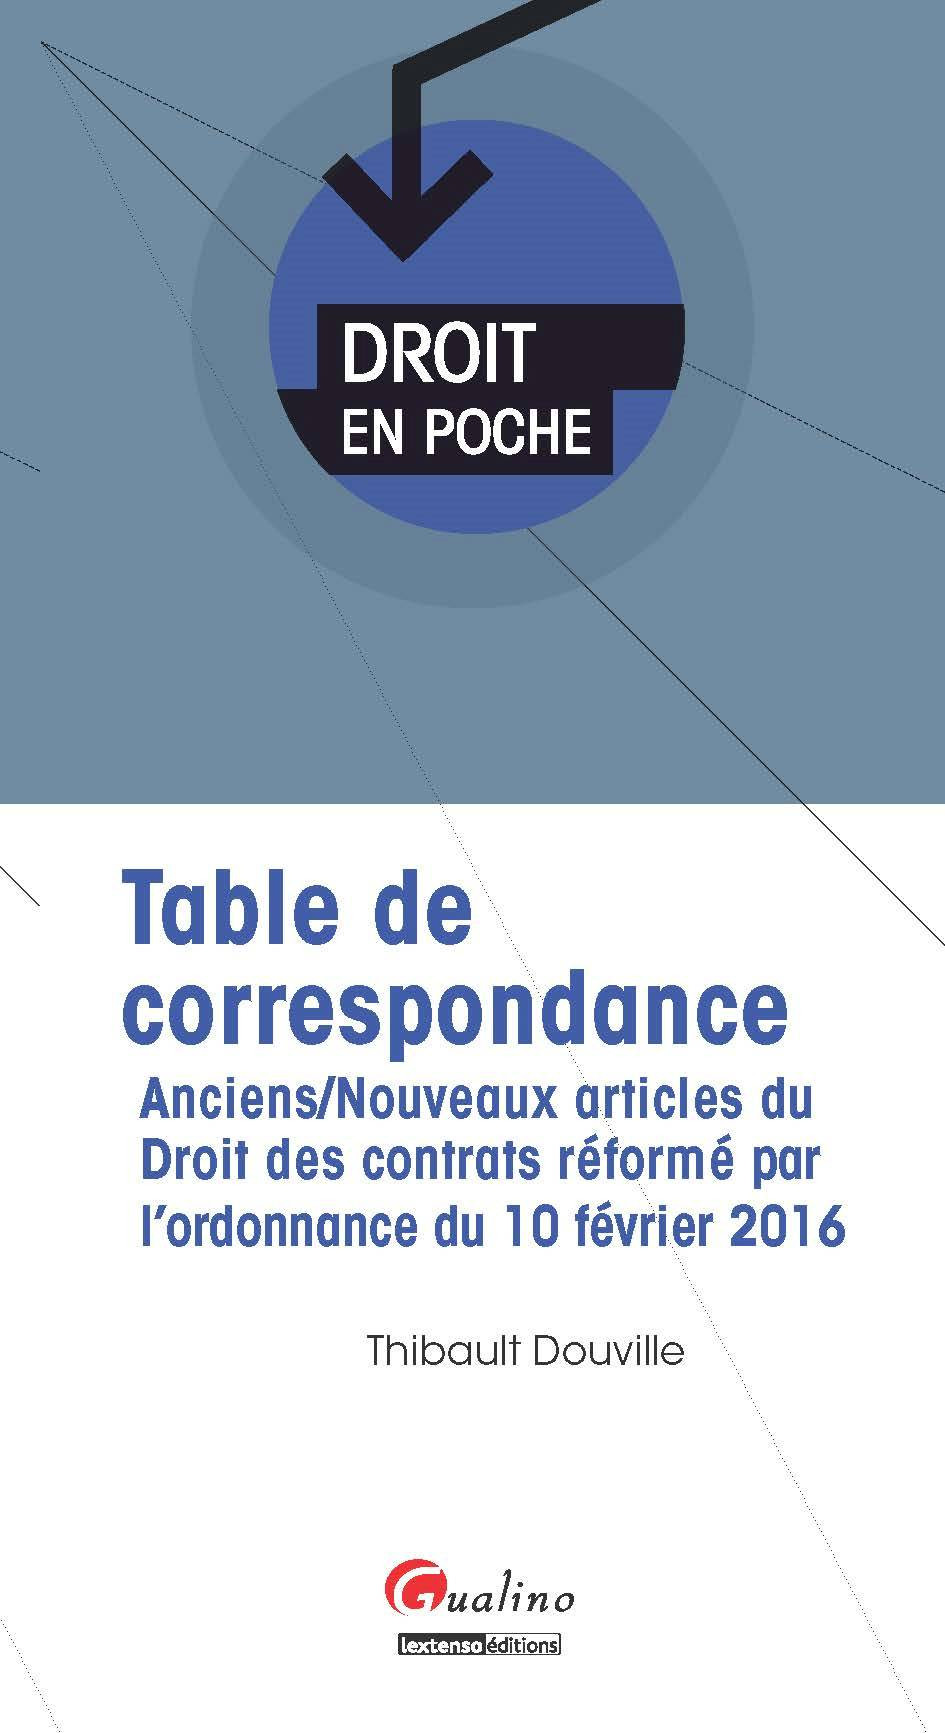 Table de correspondance t douville gualino for Catalogue de jardinage par correspondance